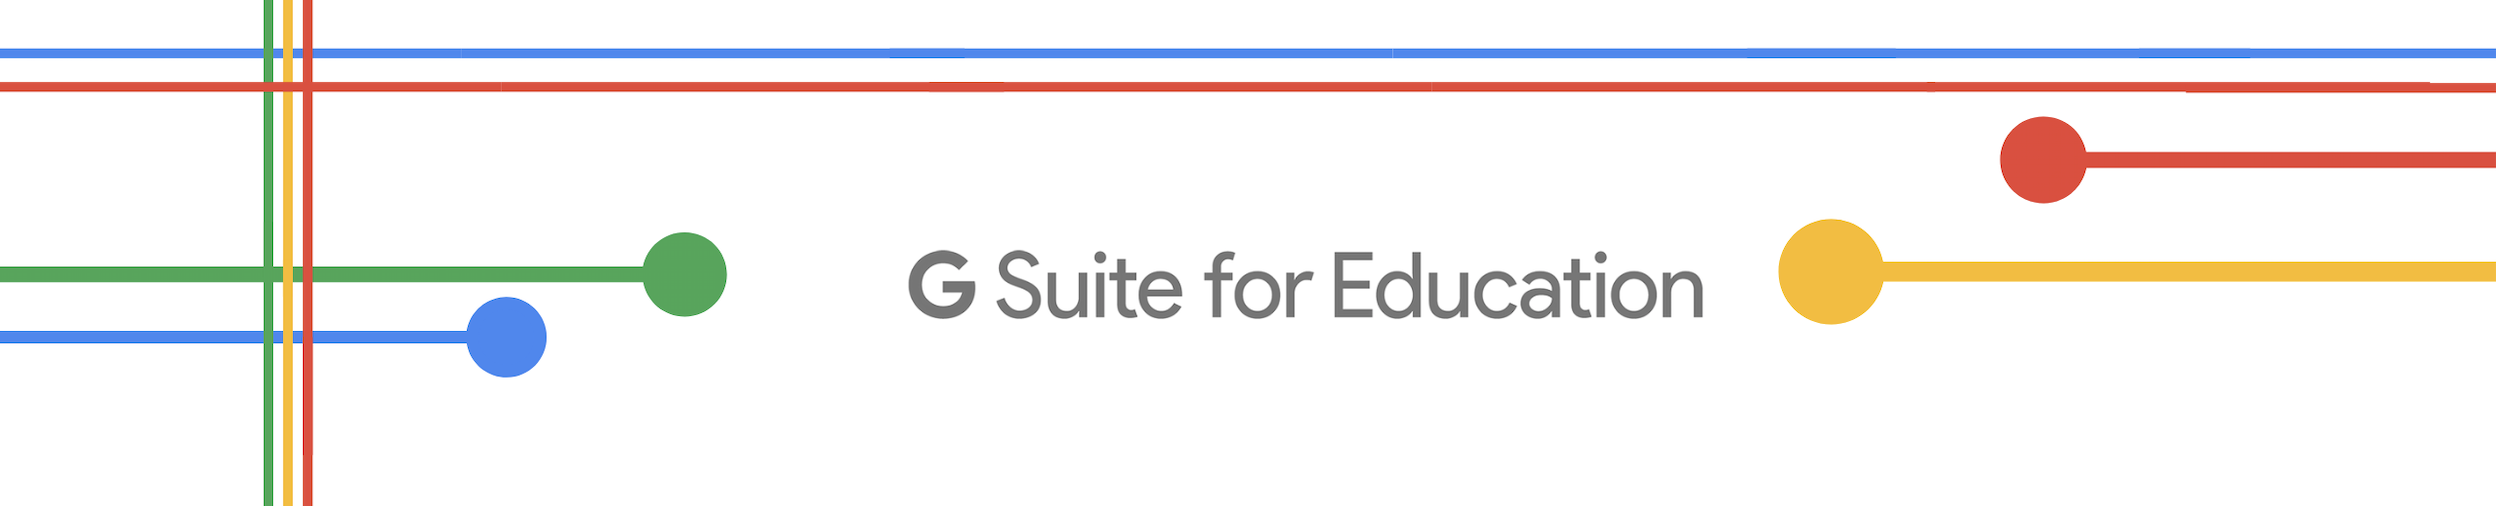 Google for Education website Fourcast for Education